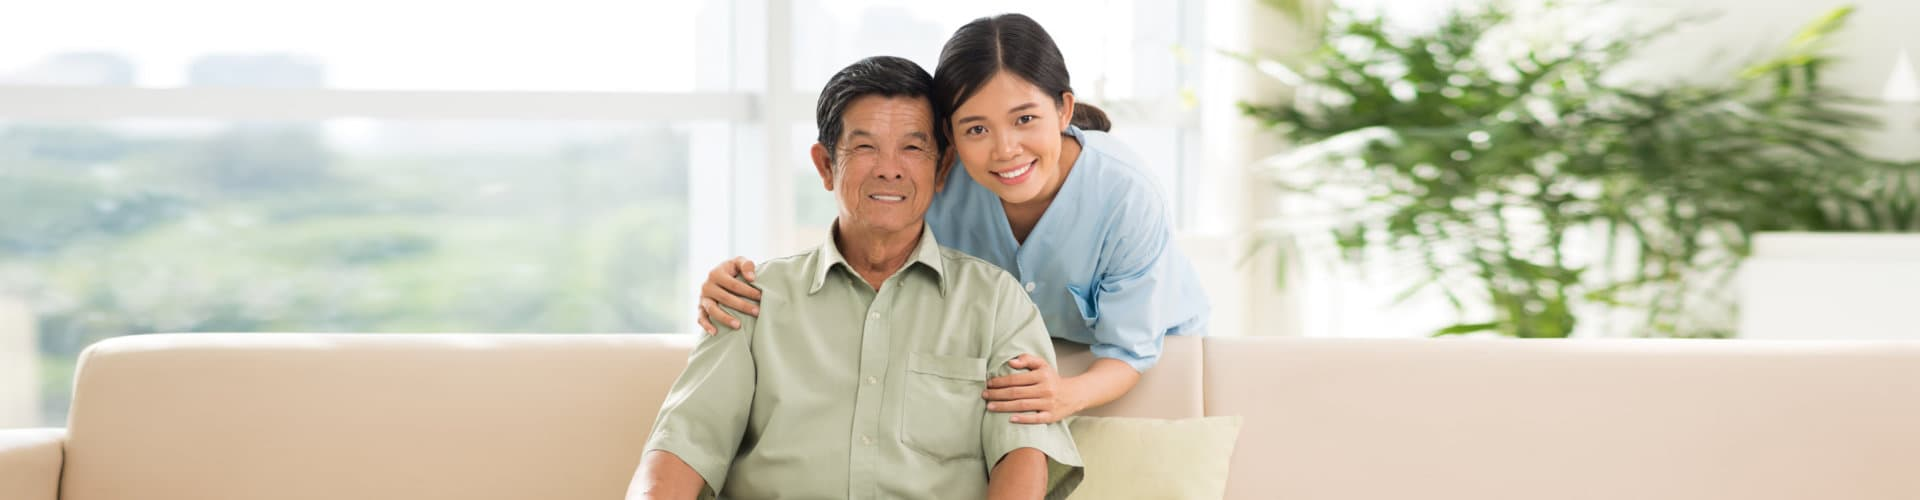 young caregiver and old man smiling